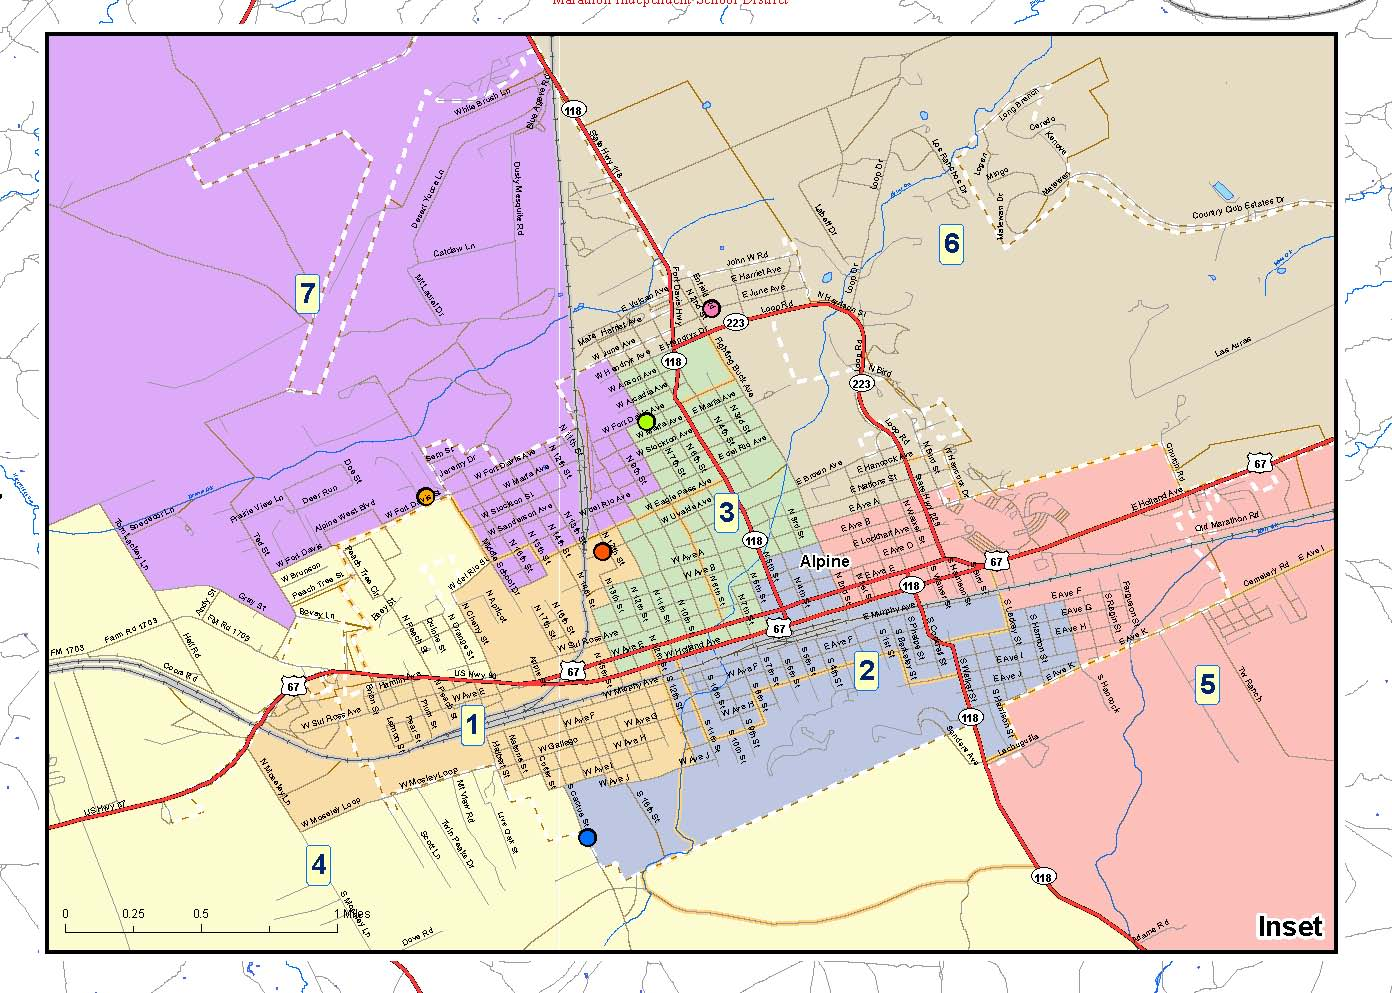 Alpine ISD - Maps of Single Member Districts on